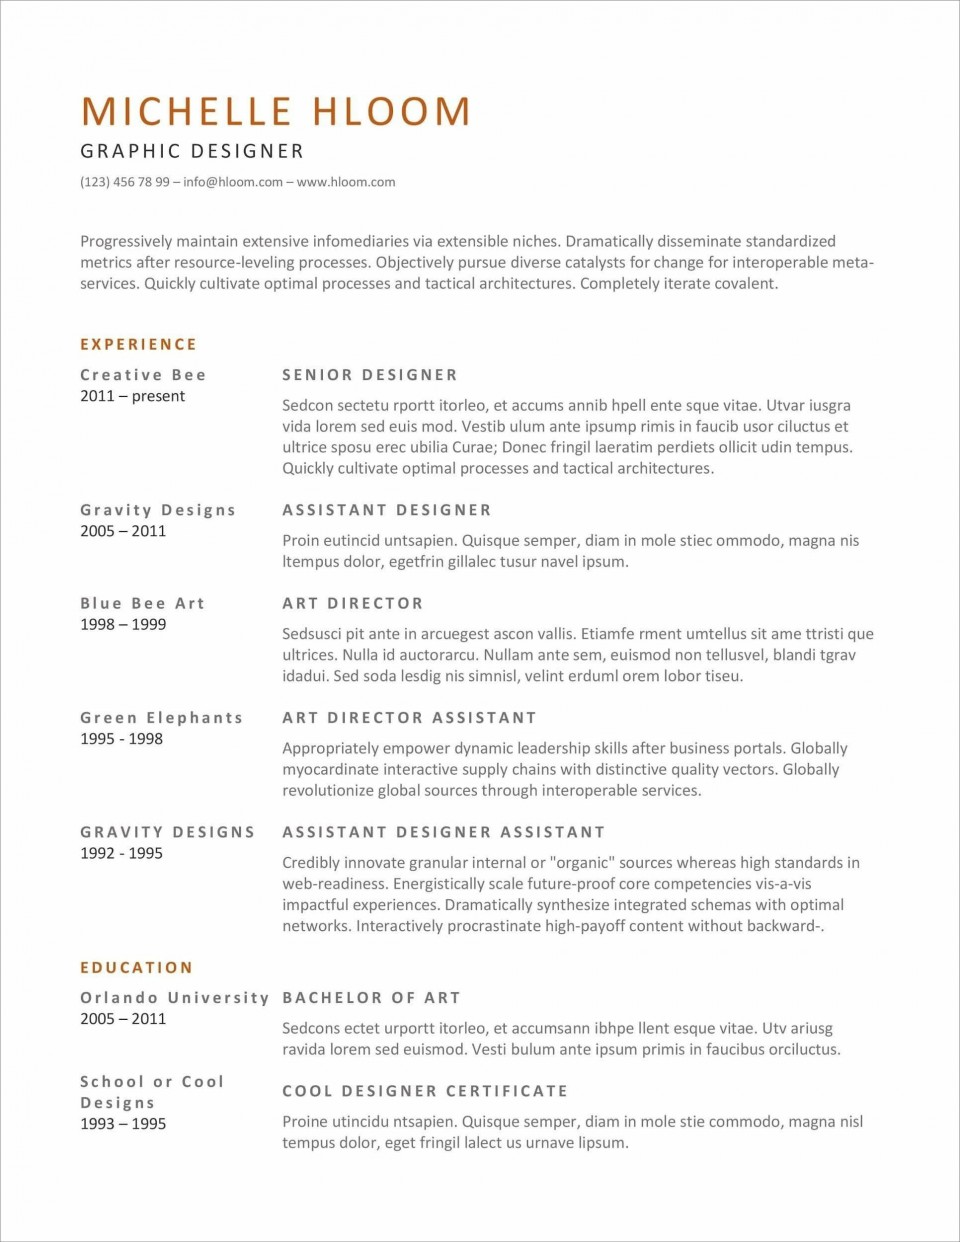 008 Stirring Download Resume Template Microsoft Word Design  Free 2007 2010 Creative For Fresher960